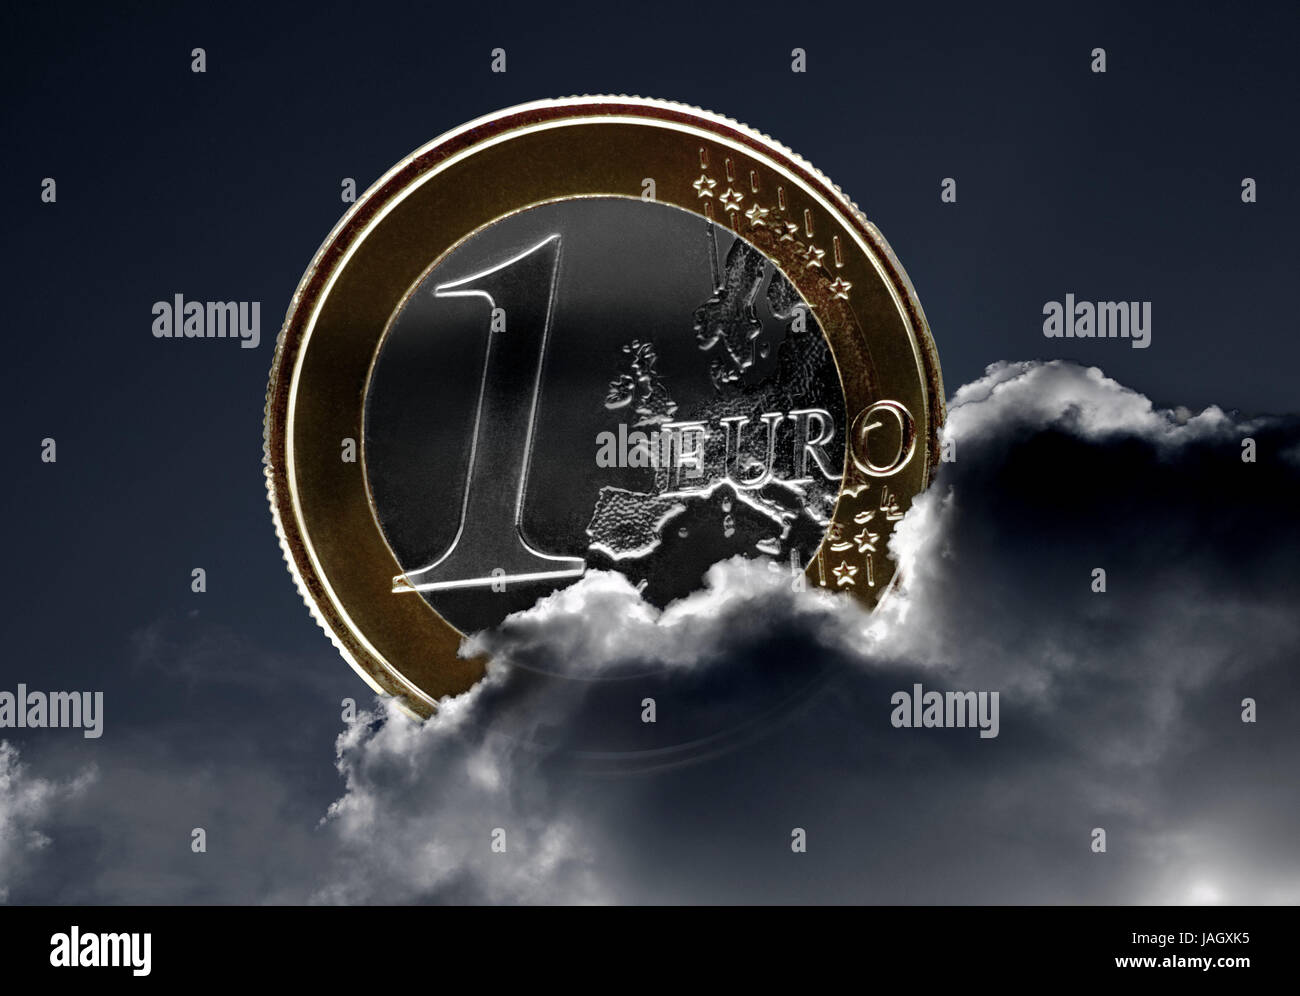 Cloudy sky,1 euro of coin,euro,€,euro coin,monetary coin,money,coin,the EU,Europe,clouds,cloudy,darkly,storm cloud,thunderstorm,eurocrisis,inflation,sky,cloudies,computer - Stock Image